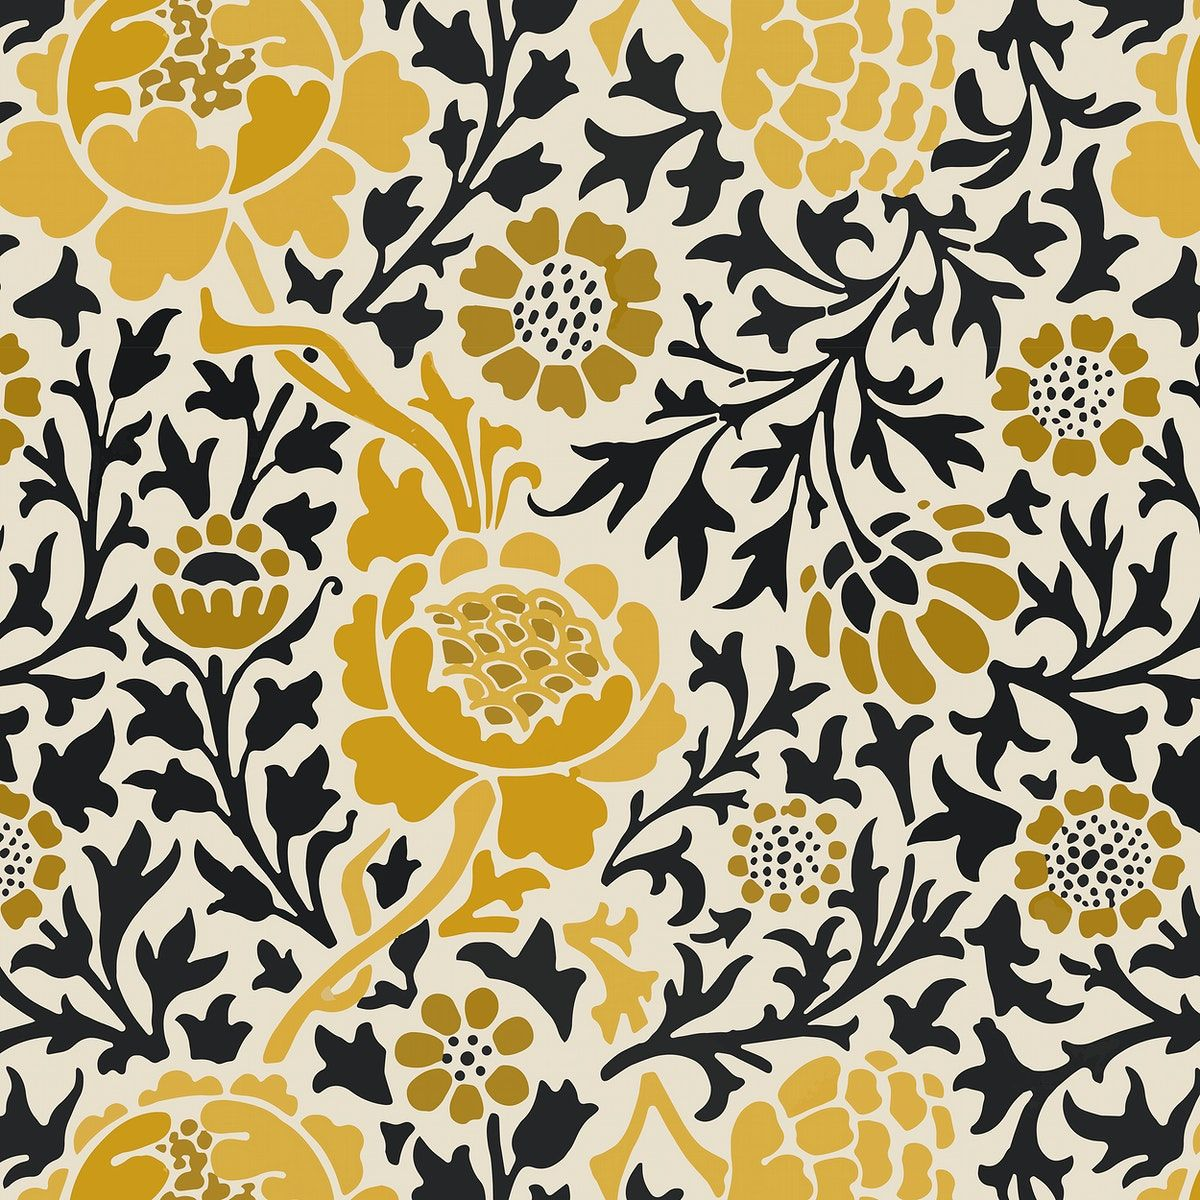 Decorative Vintage Flower Ornament Seamless Pattern Background Vector Free Image By Rawpixel Com In 2020 Vector Background Pattern Vintage Flowers Flower Ornaments